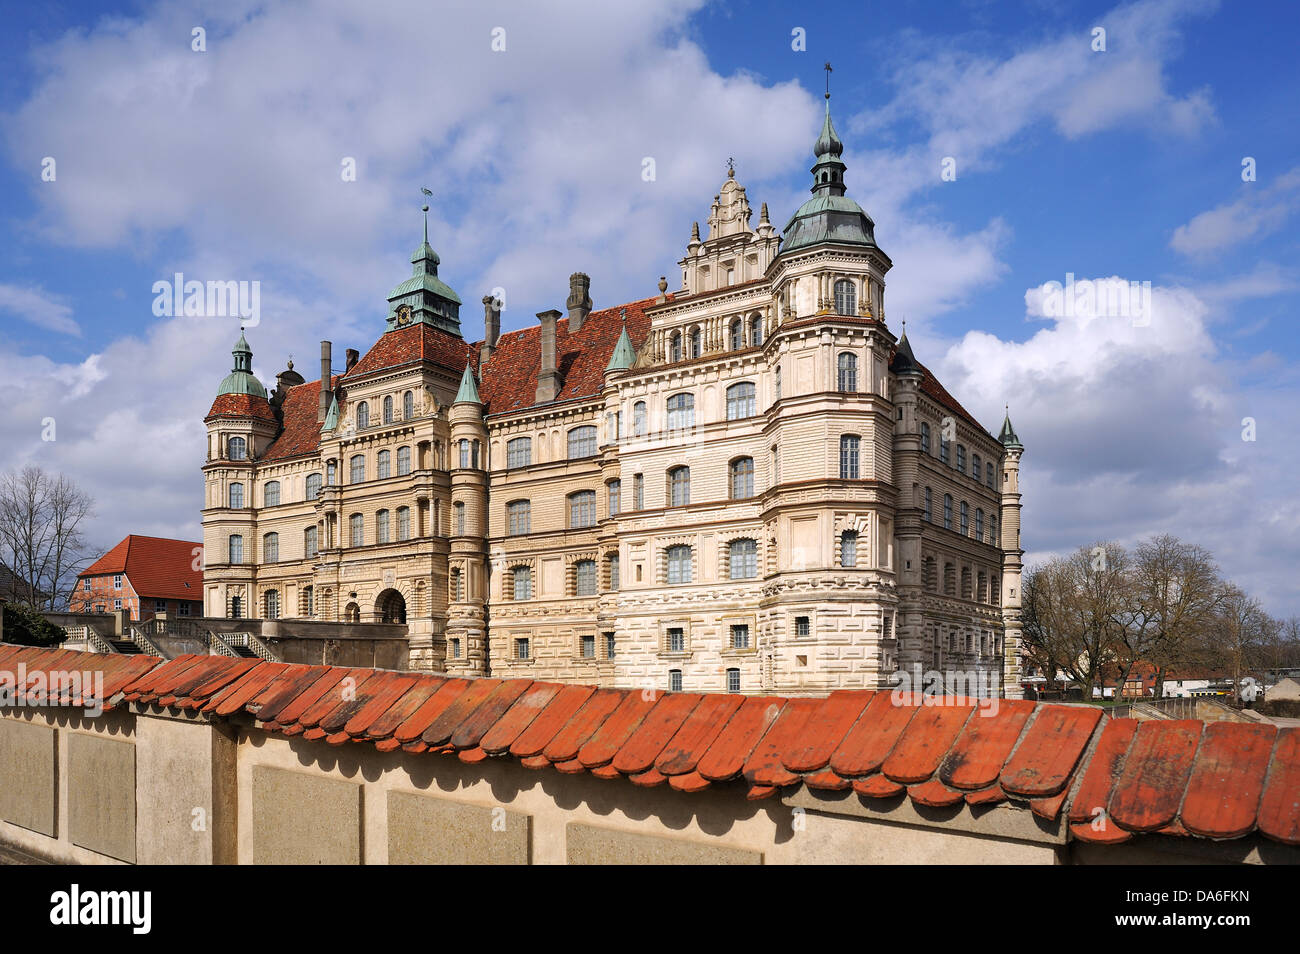 Schloss Guestrow Castle, Renaissance building with three wings, completed in 1671, now a museum - Stock Image